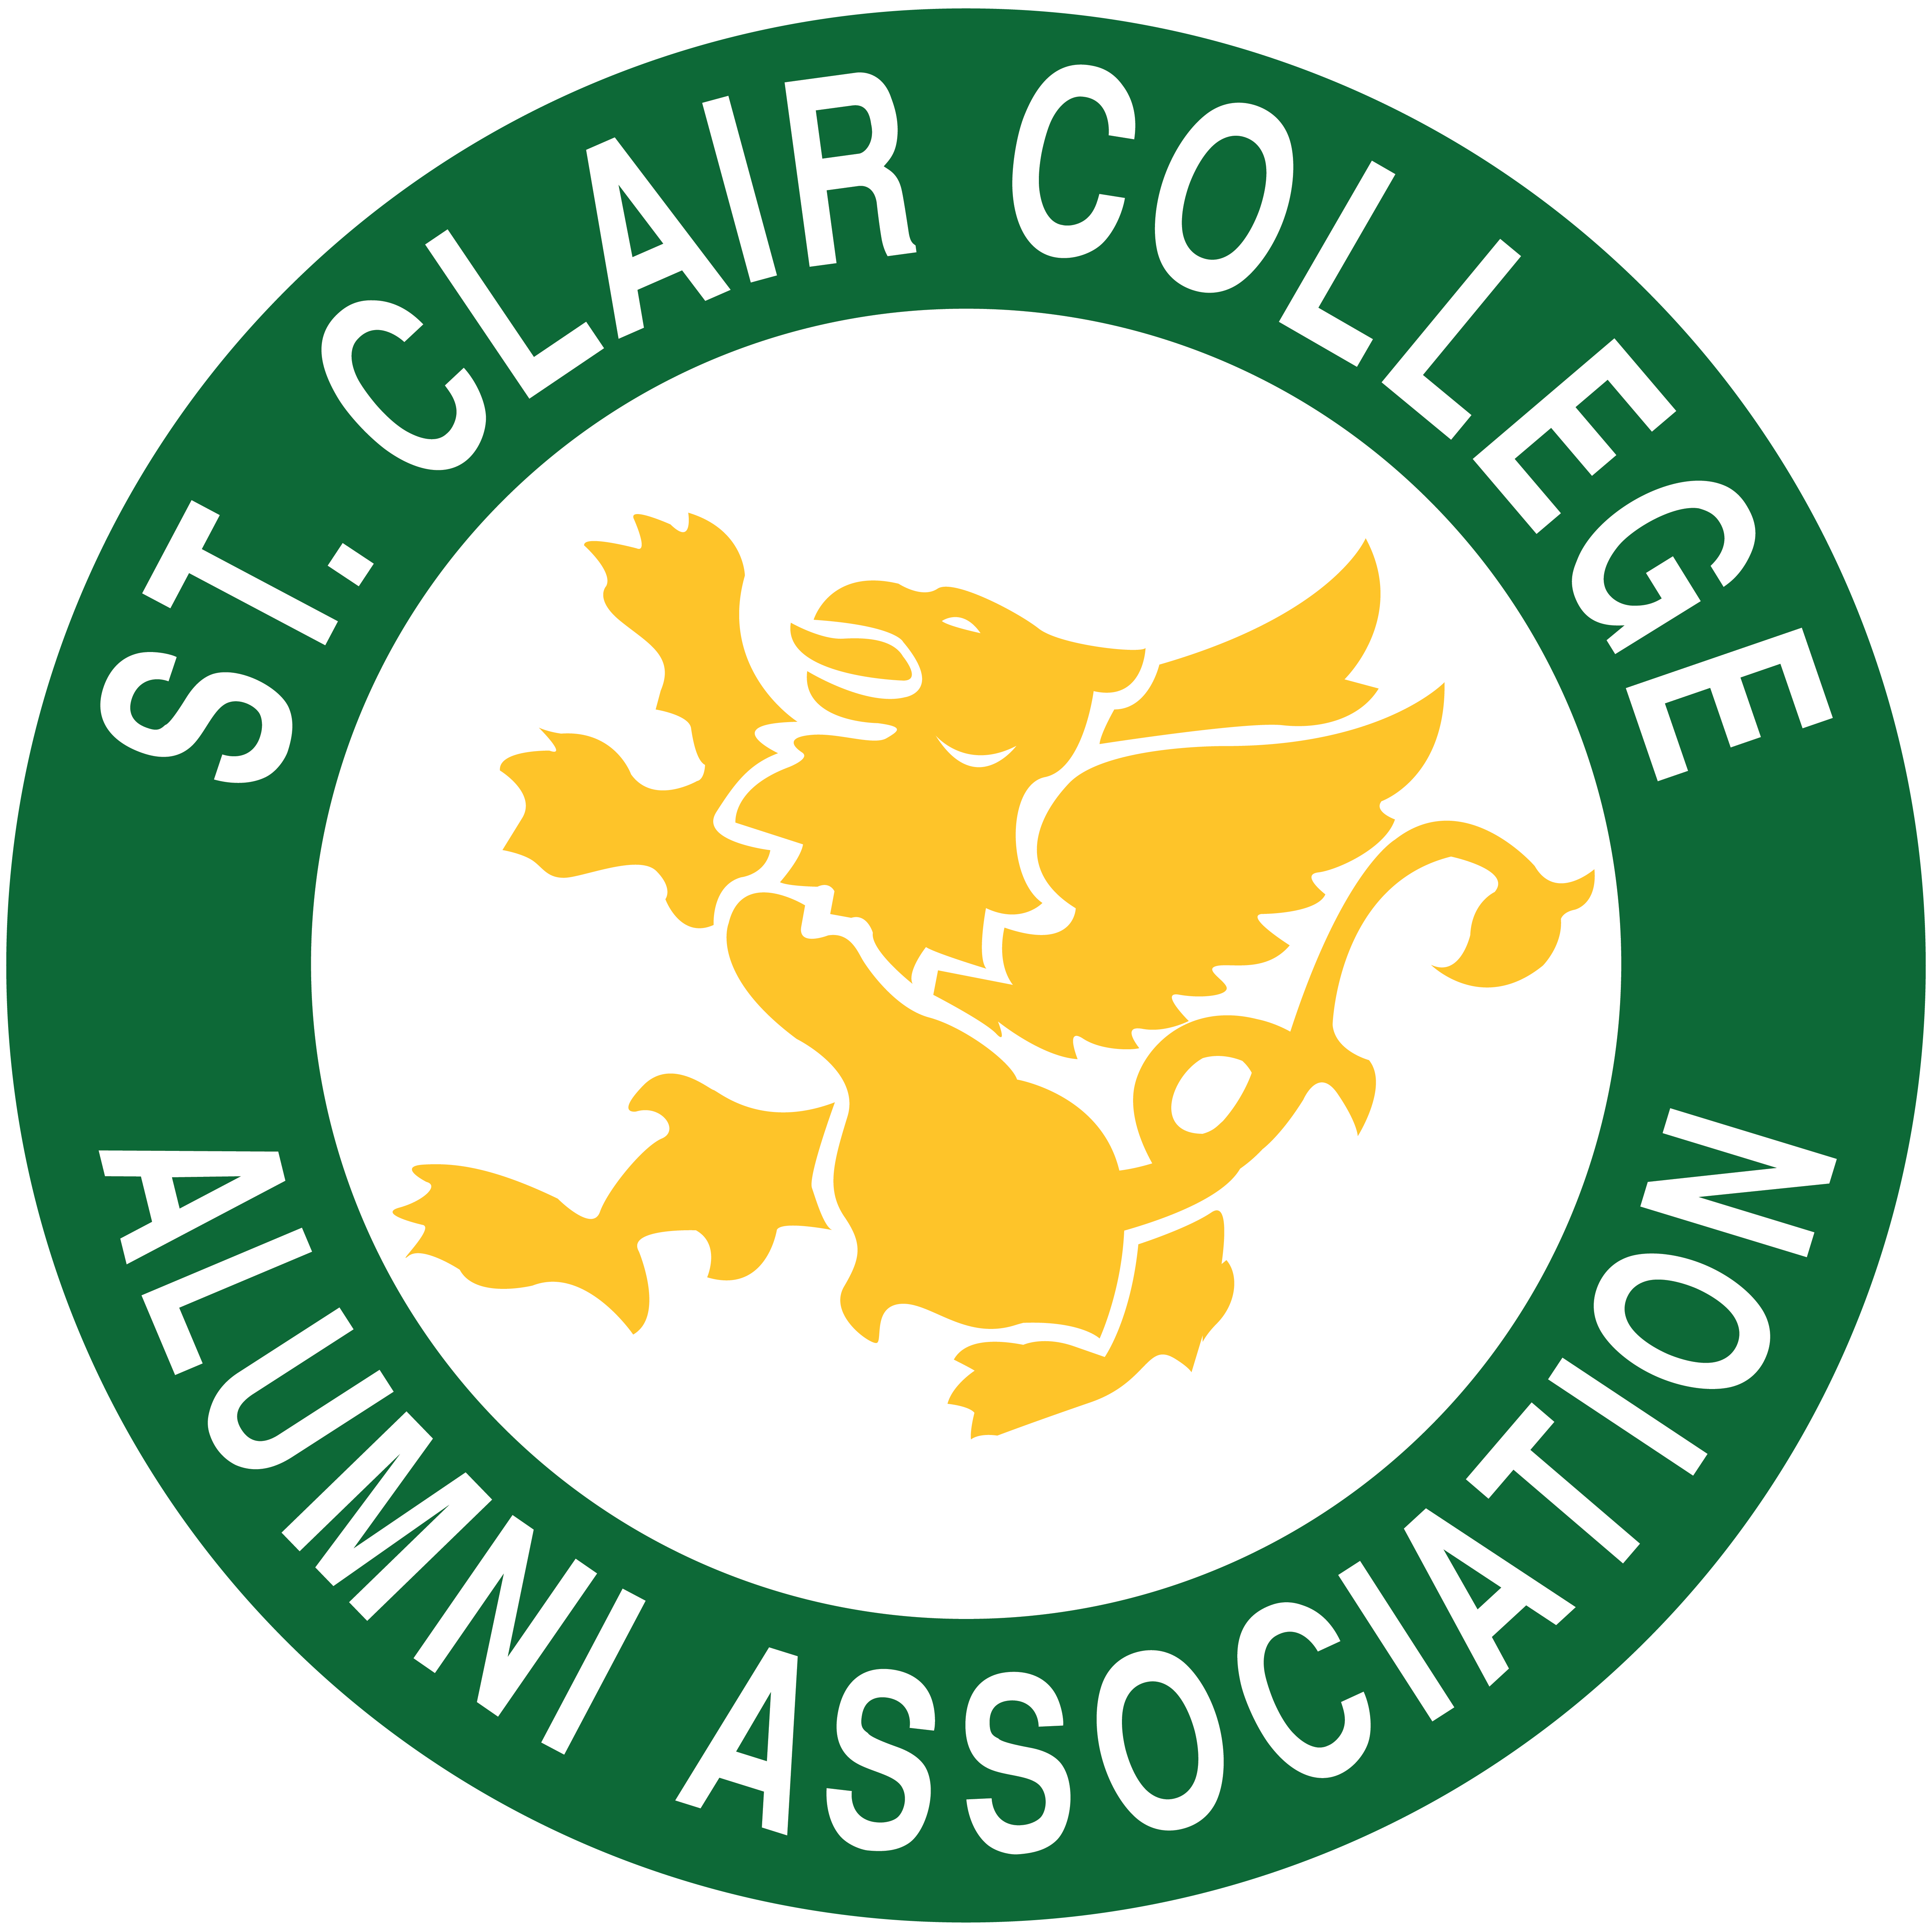 St. Clair College Alumni Association logo